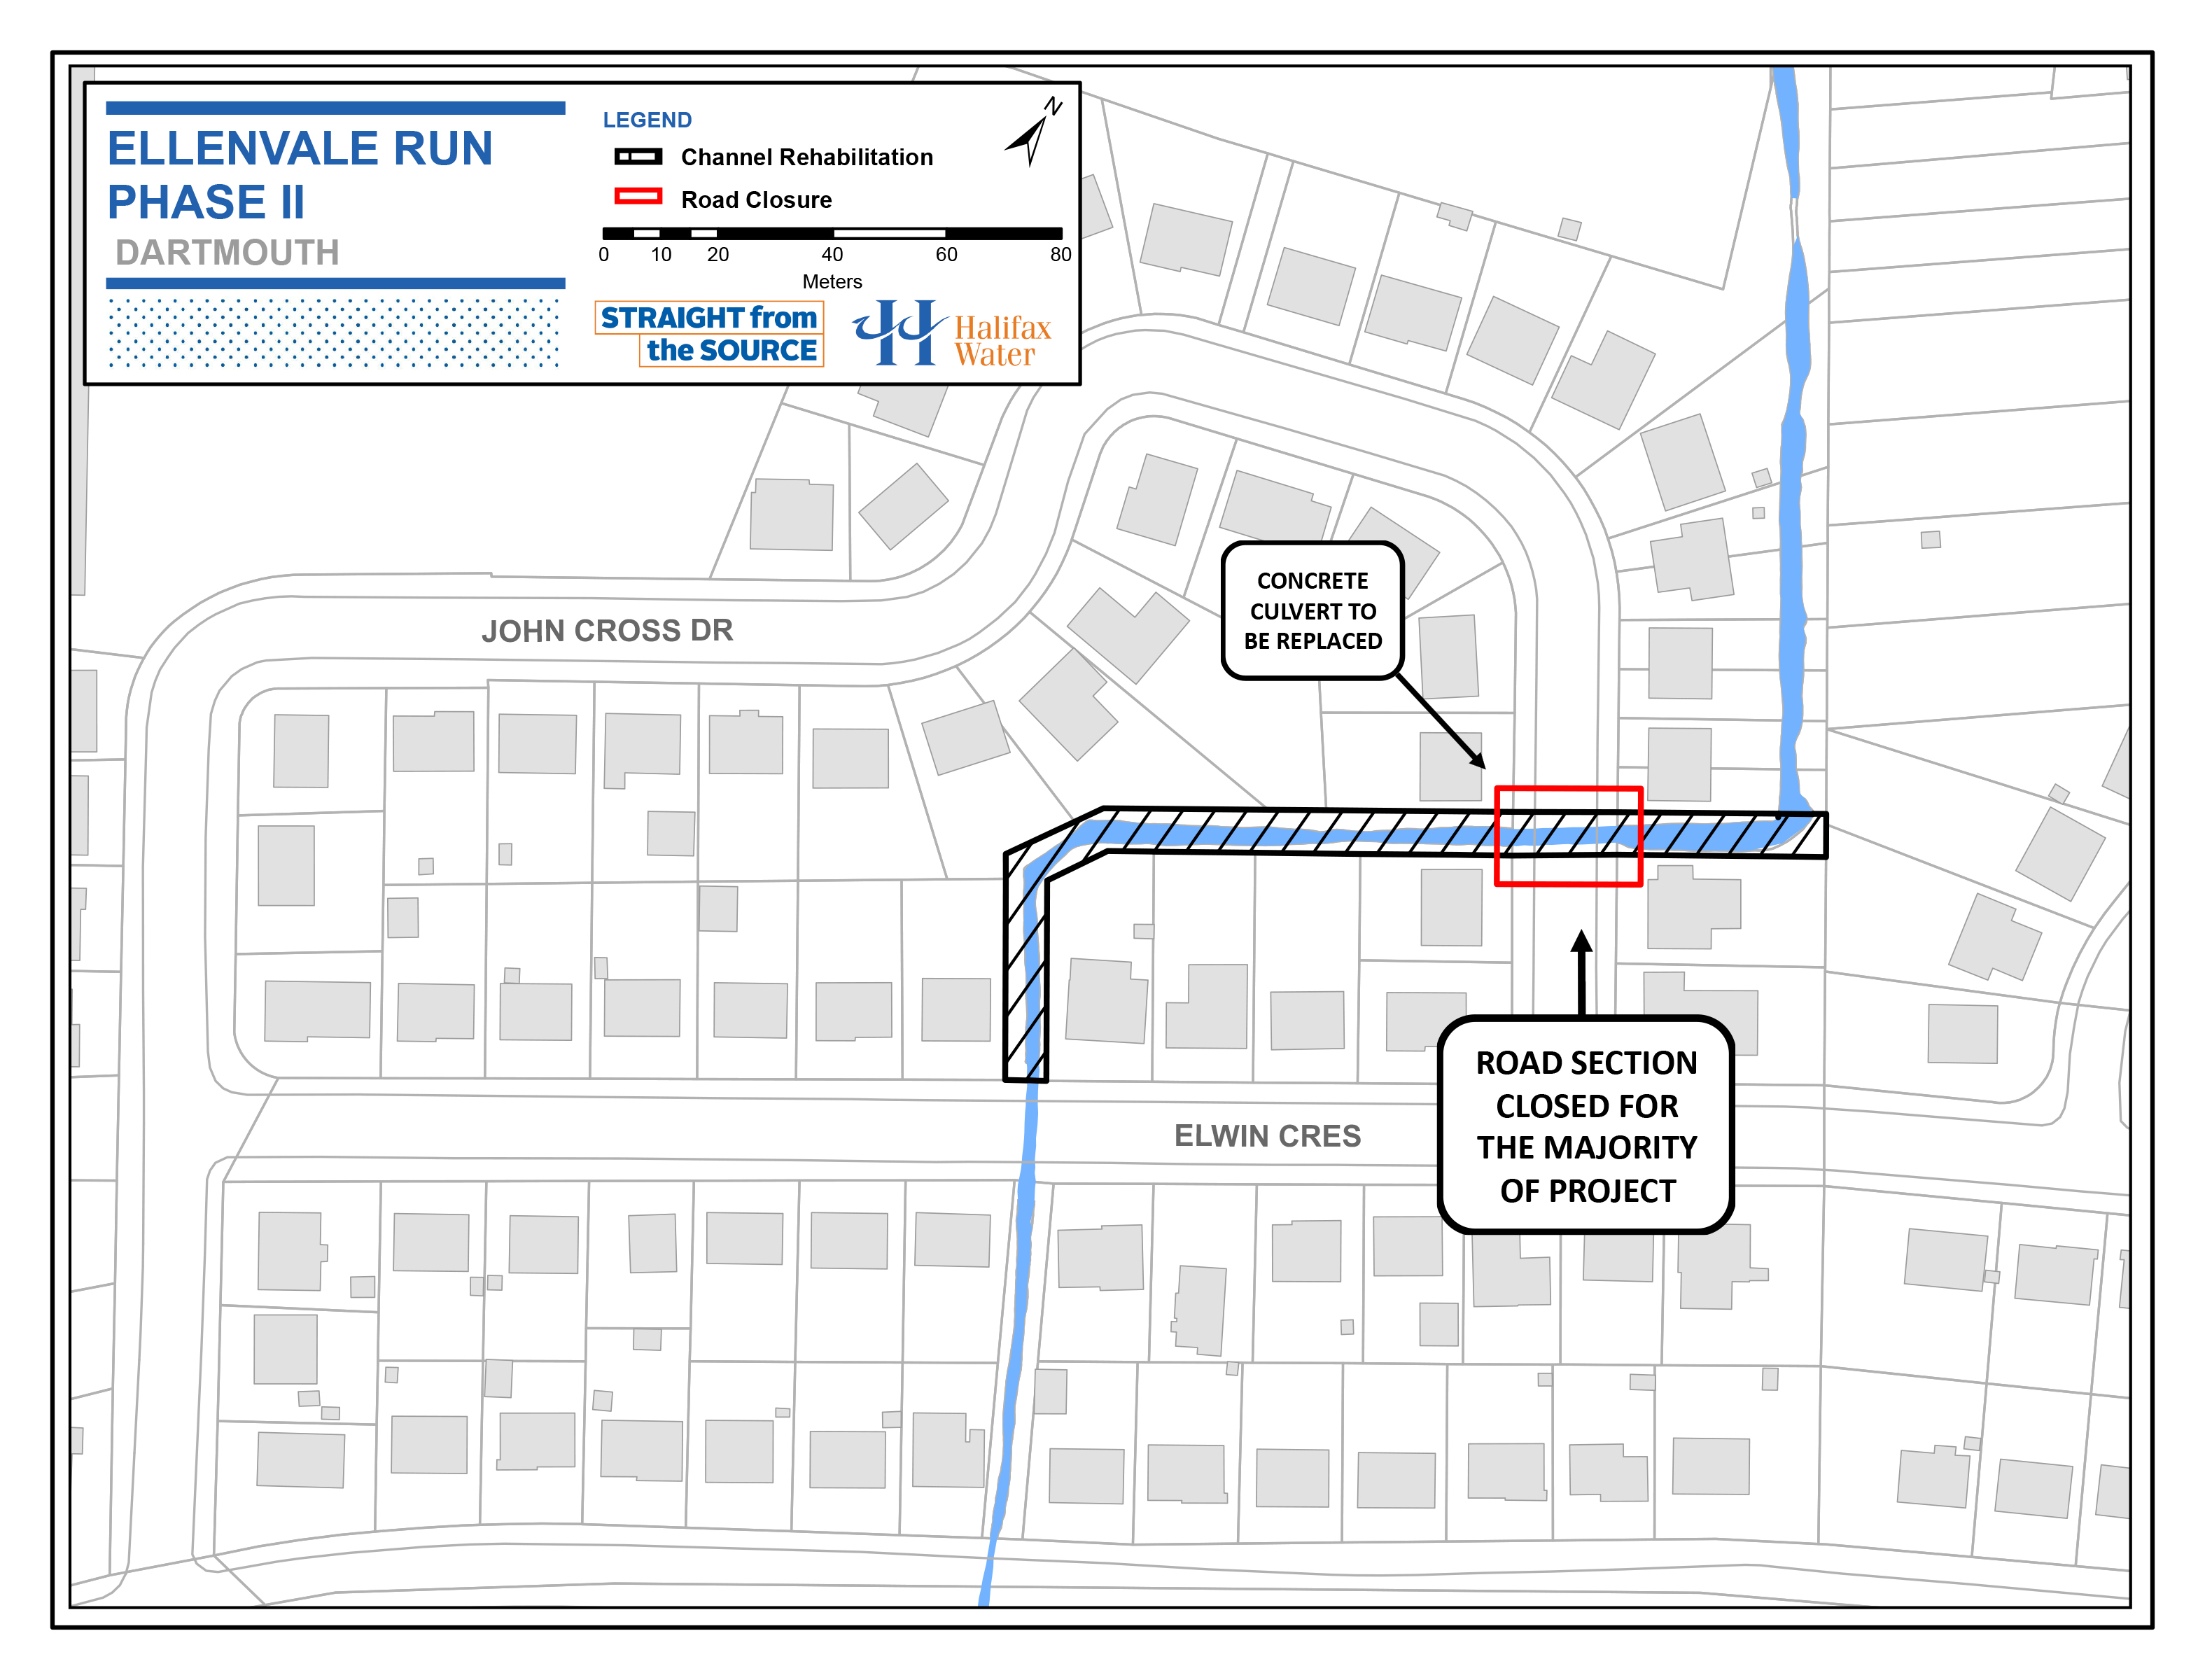 Ellenvale Run Rehabilitation Project Phase 2 - Project Map